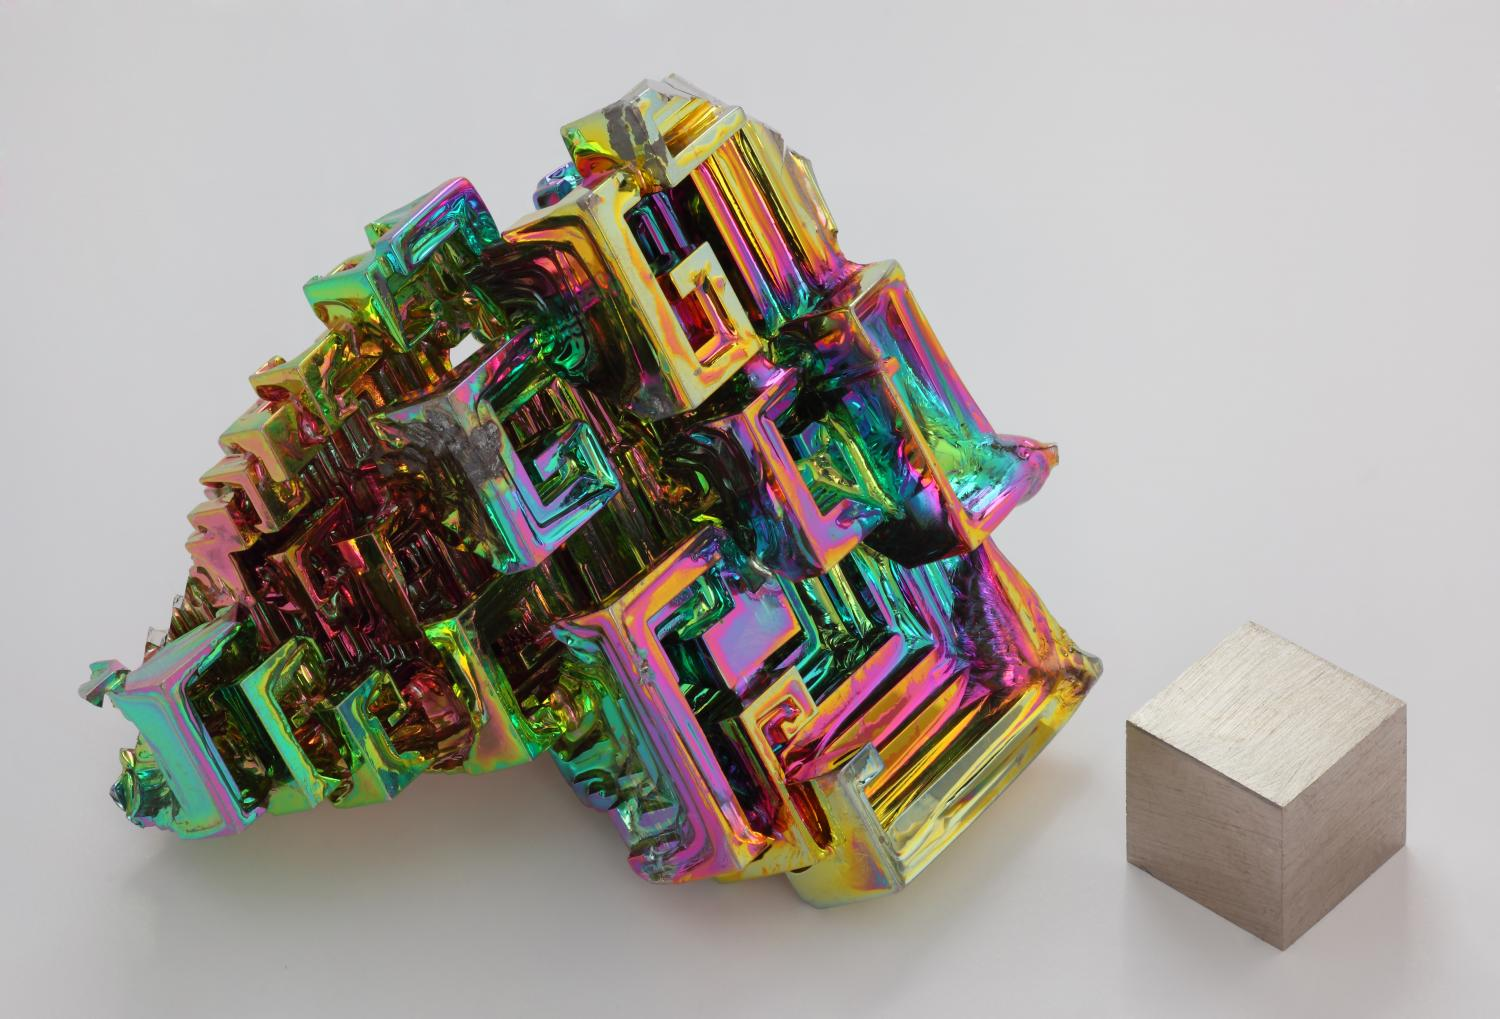 Discovery of bismuth superconductivity at extremely low temperature jeopardizes theory